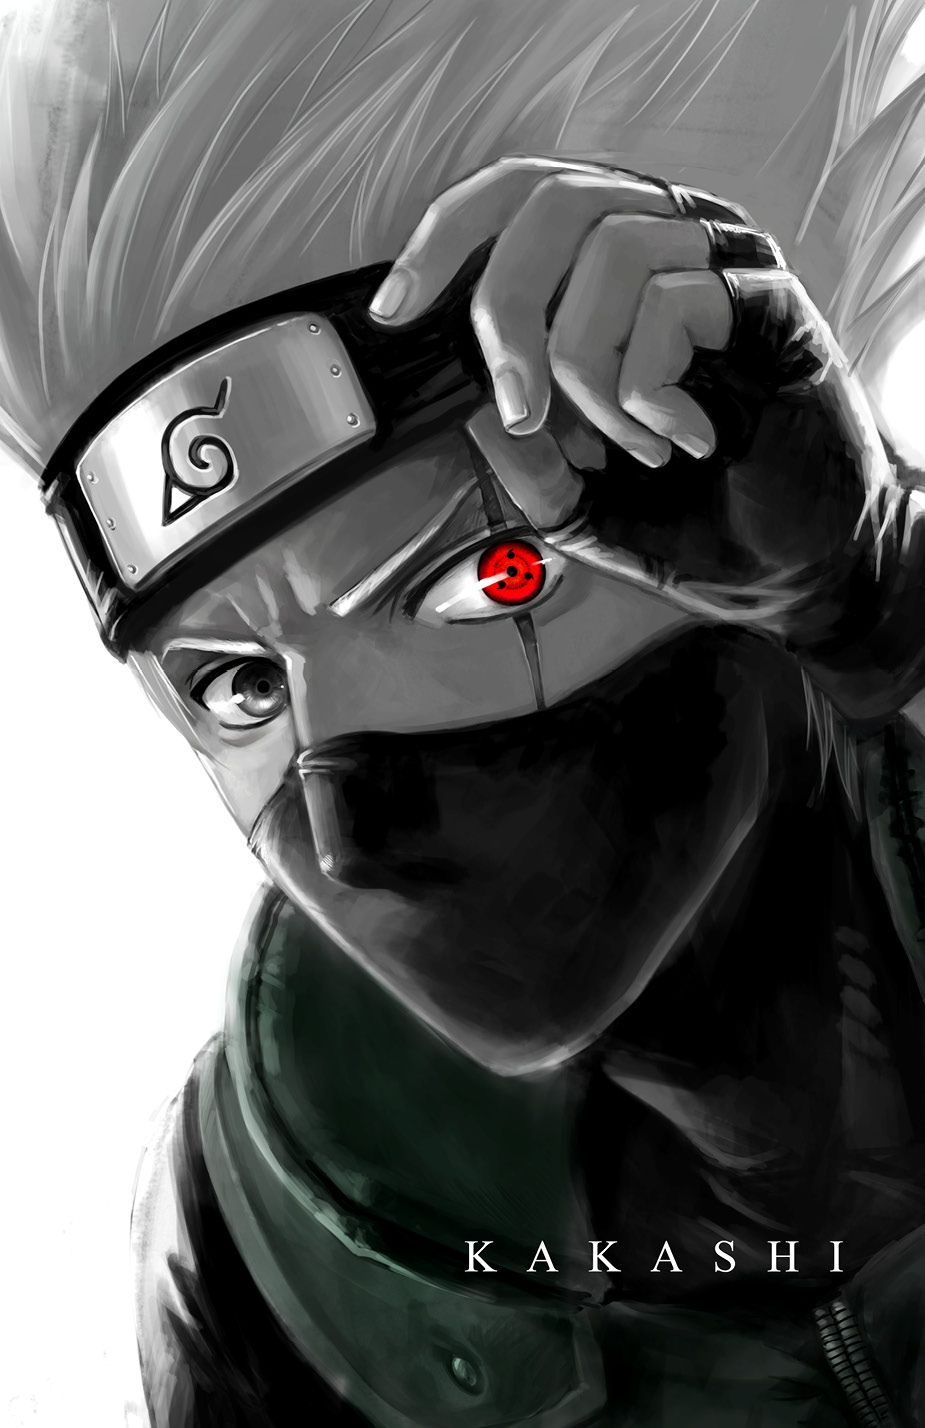 """Sharingan Eye Kakashi"" by morbidprince. 